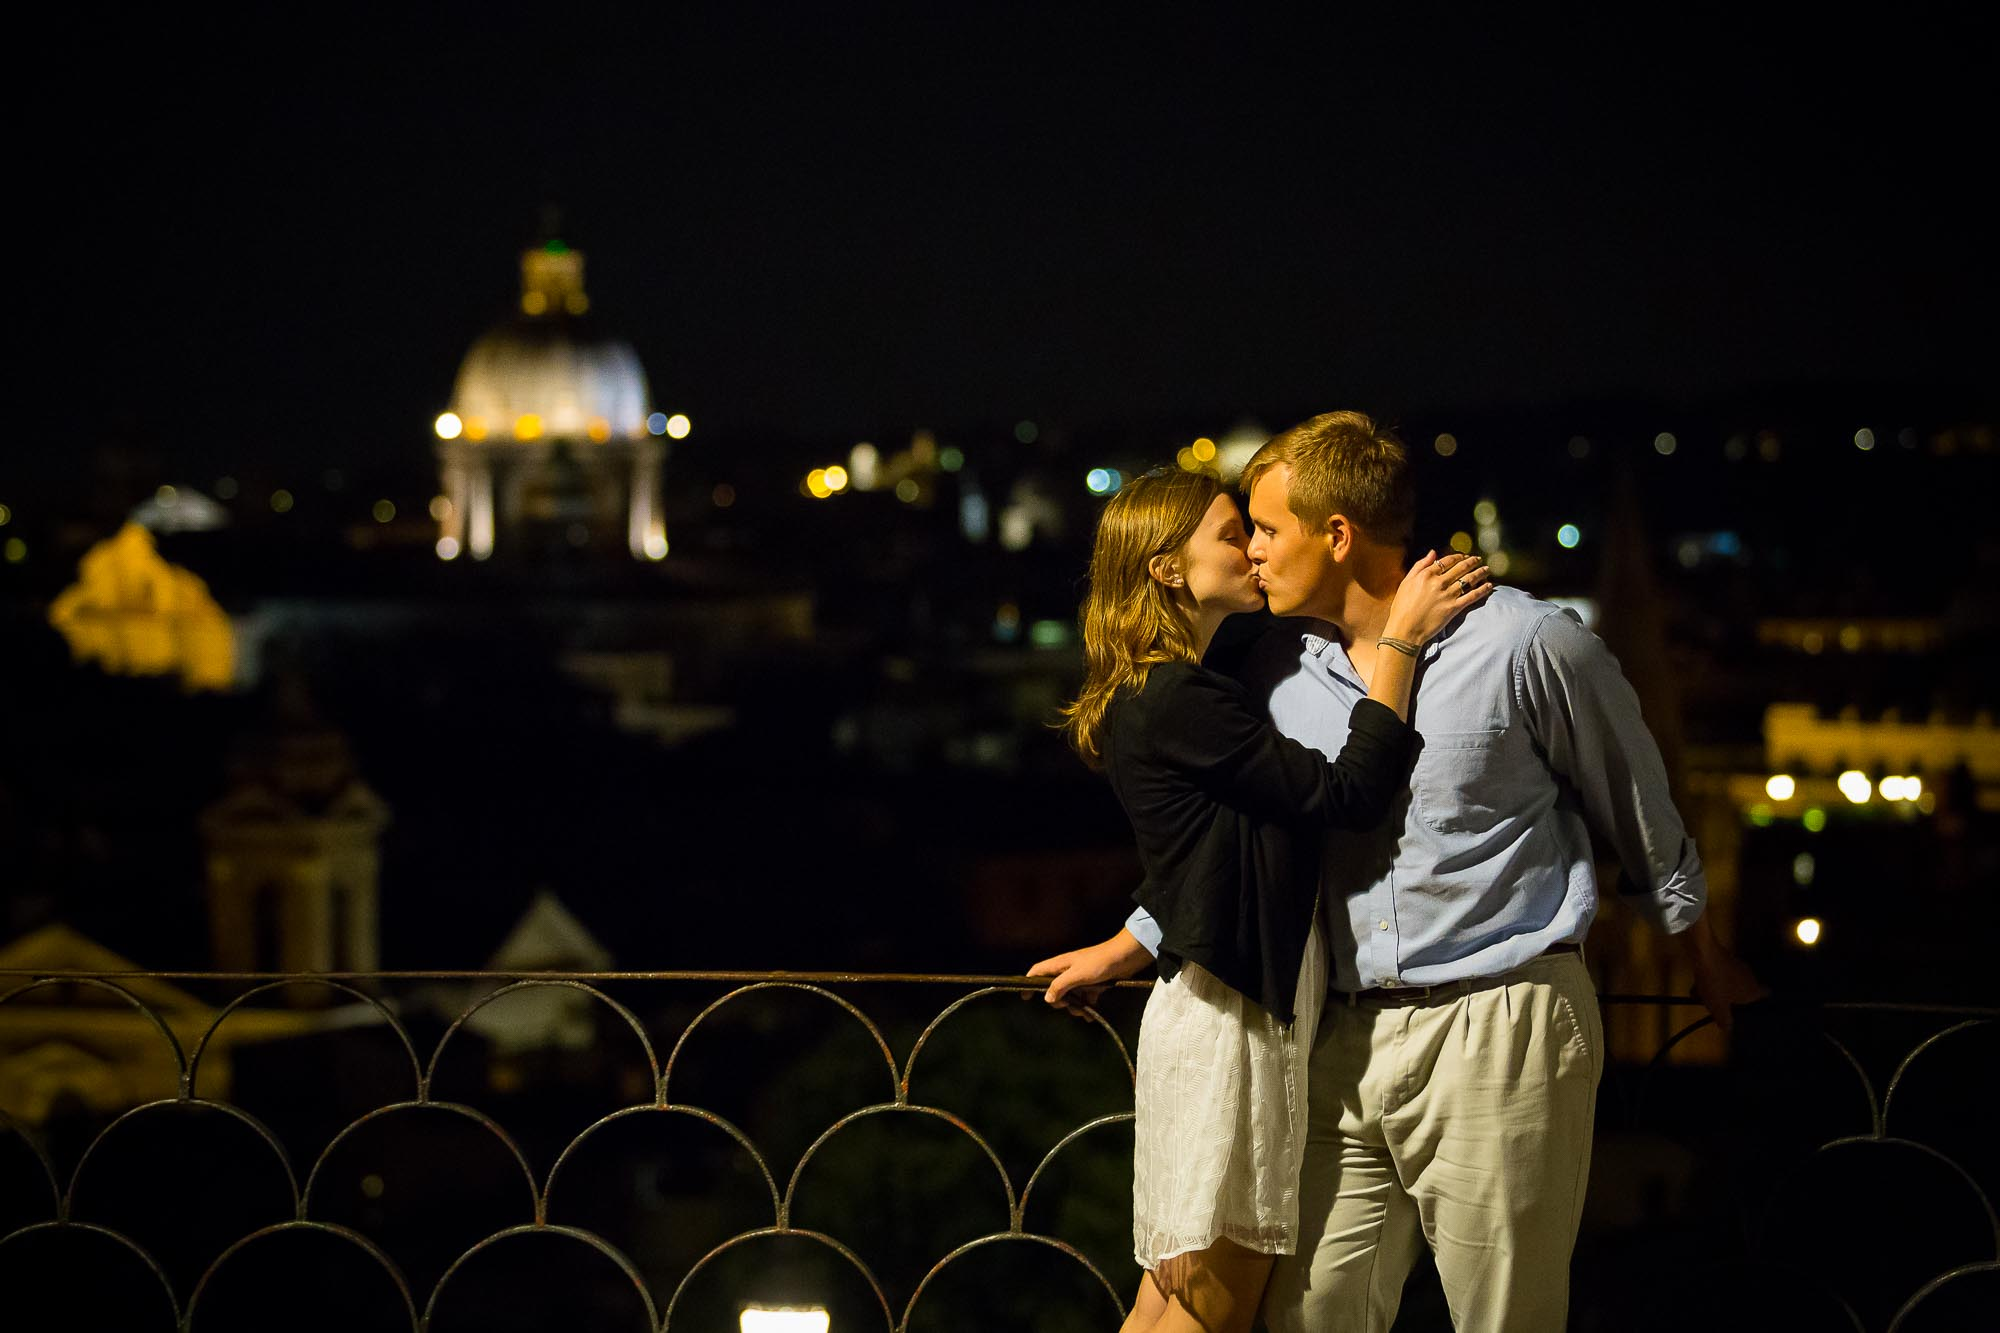 Kissing in love before the roman rooftops at night.